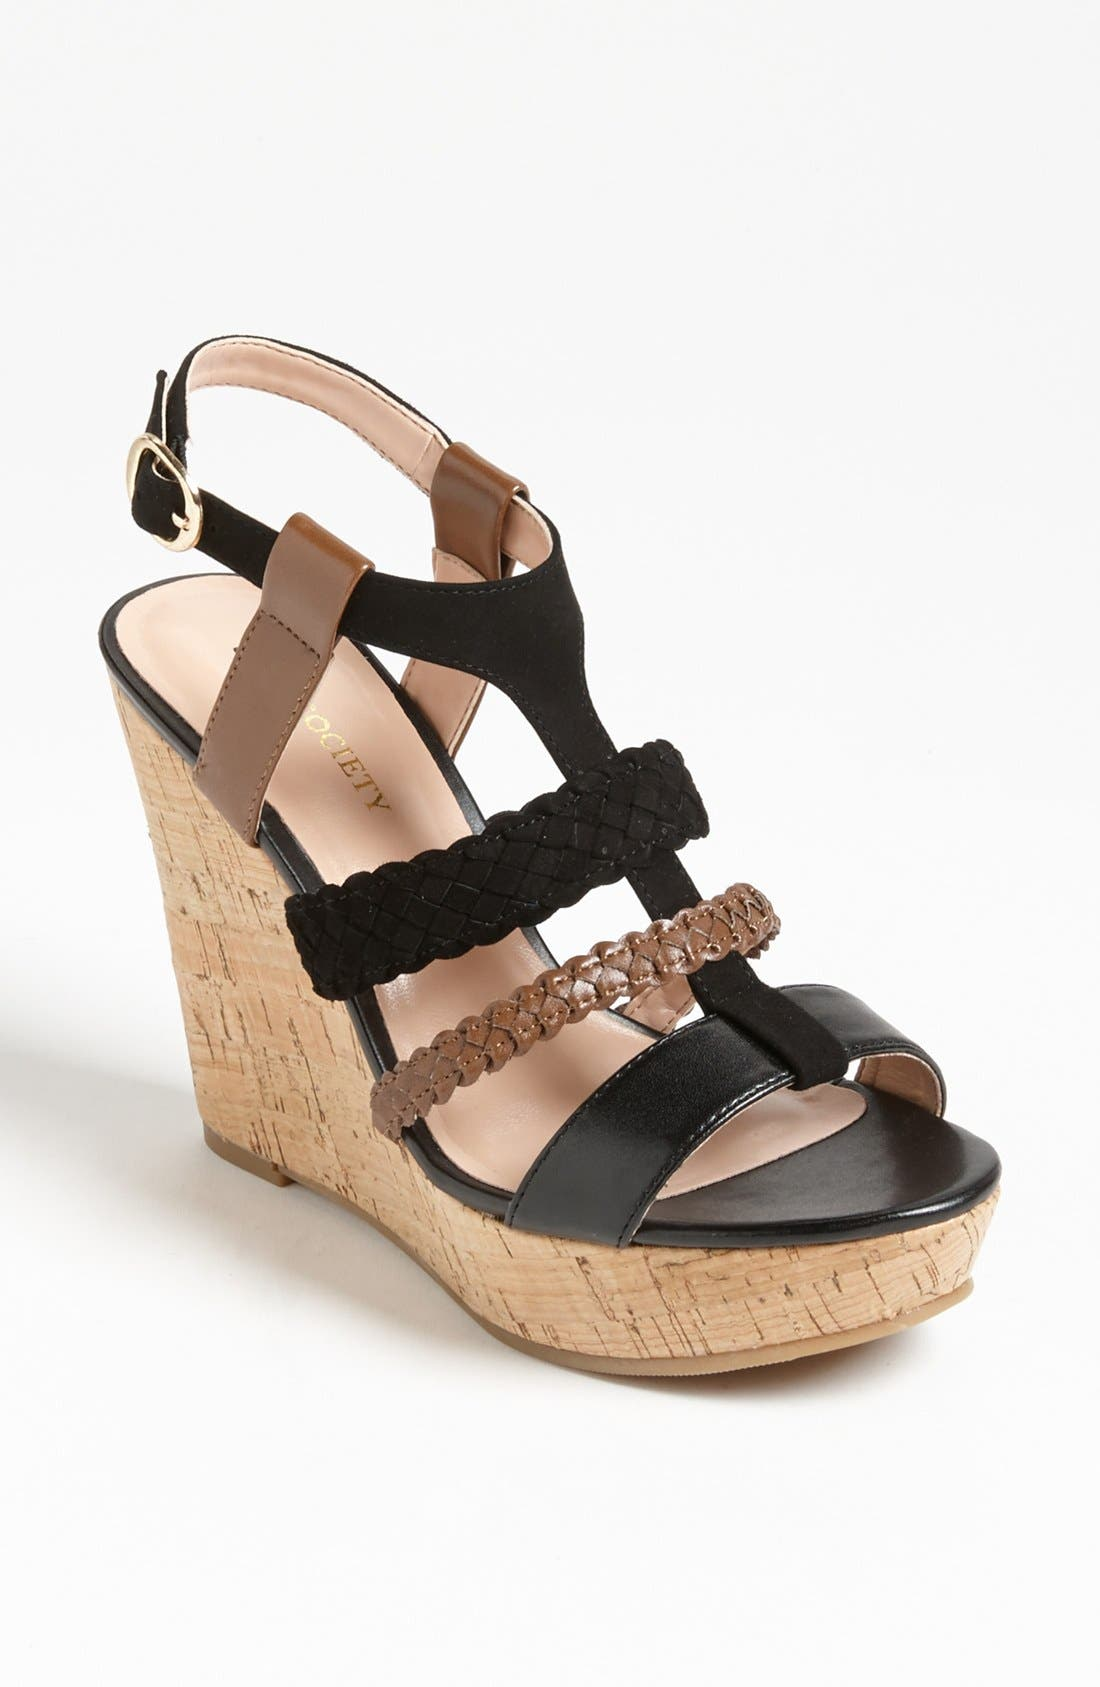 Main Image - Sole Society 'Serina' Wedge Sandal